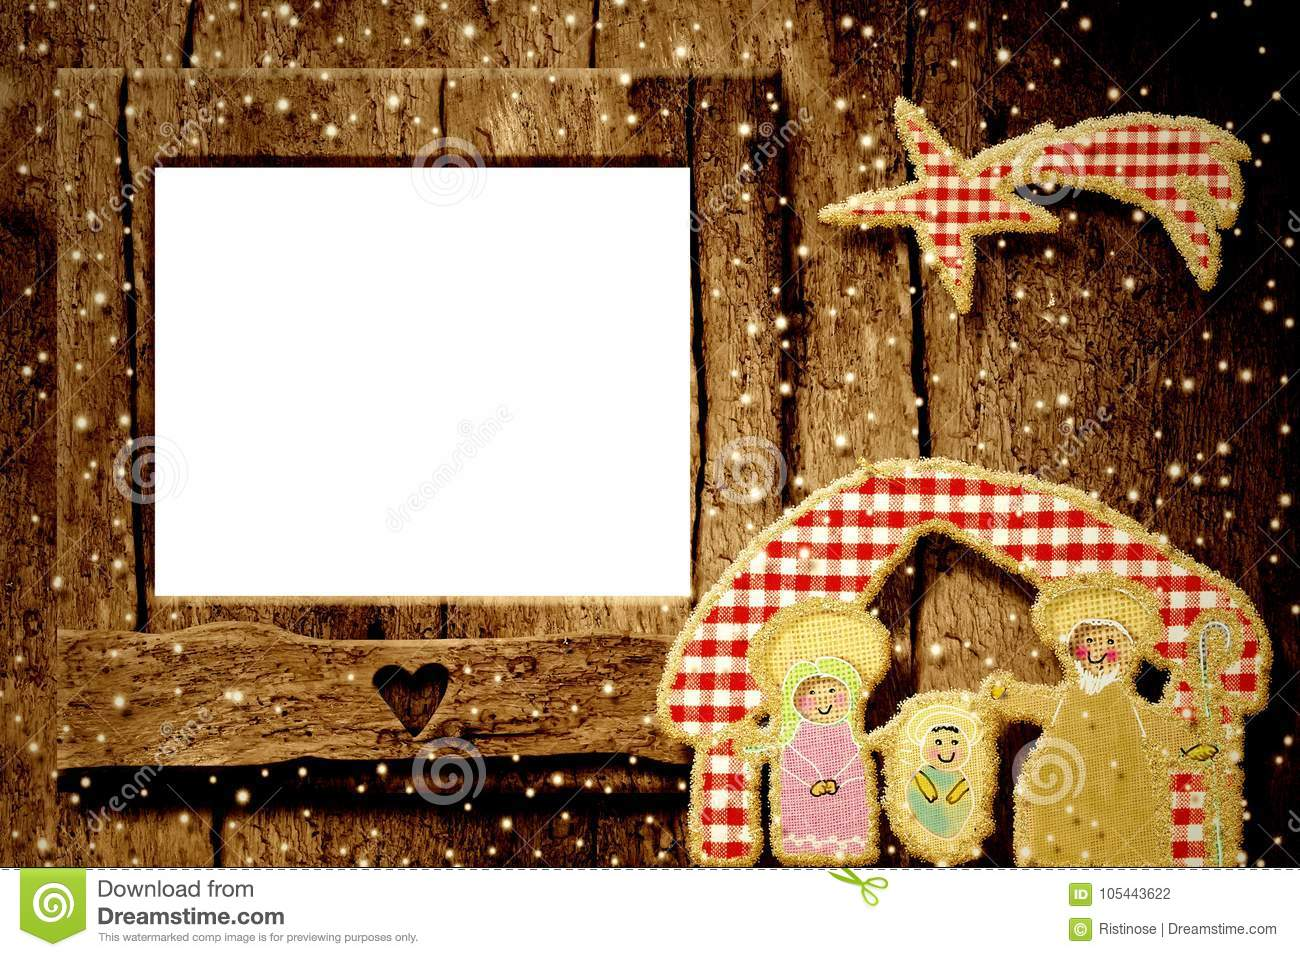 Christmas Photo Frame Greetings Card Stock Photo Image Of Creche